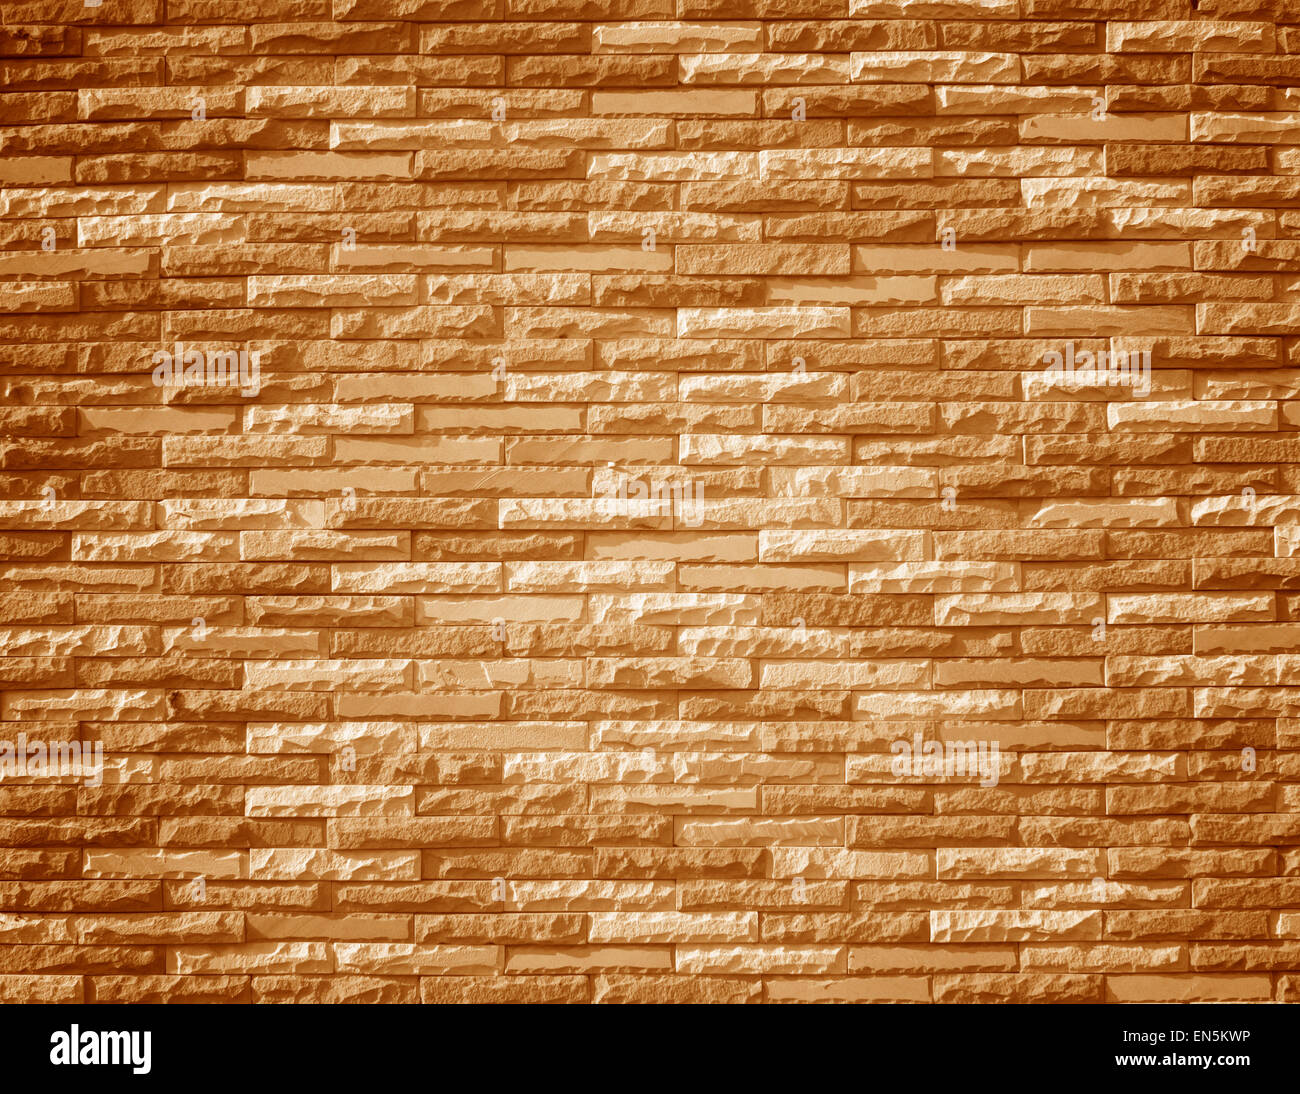 Stone Wall Tile construction wall interior background. - Stock Image